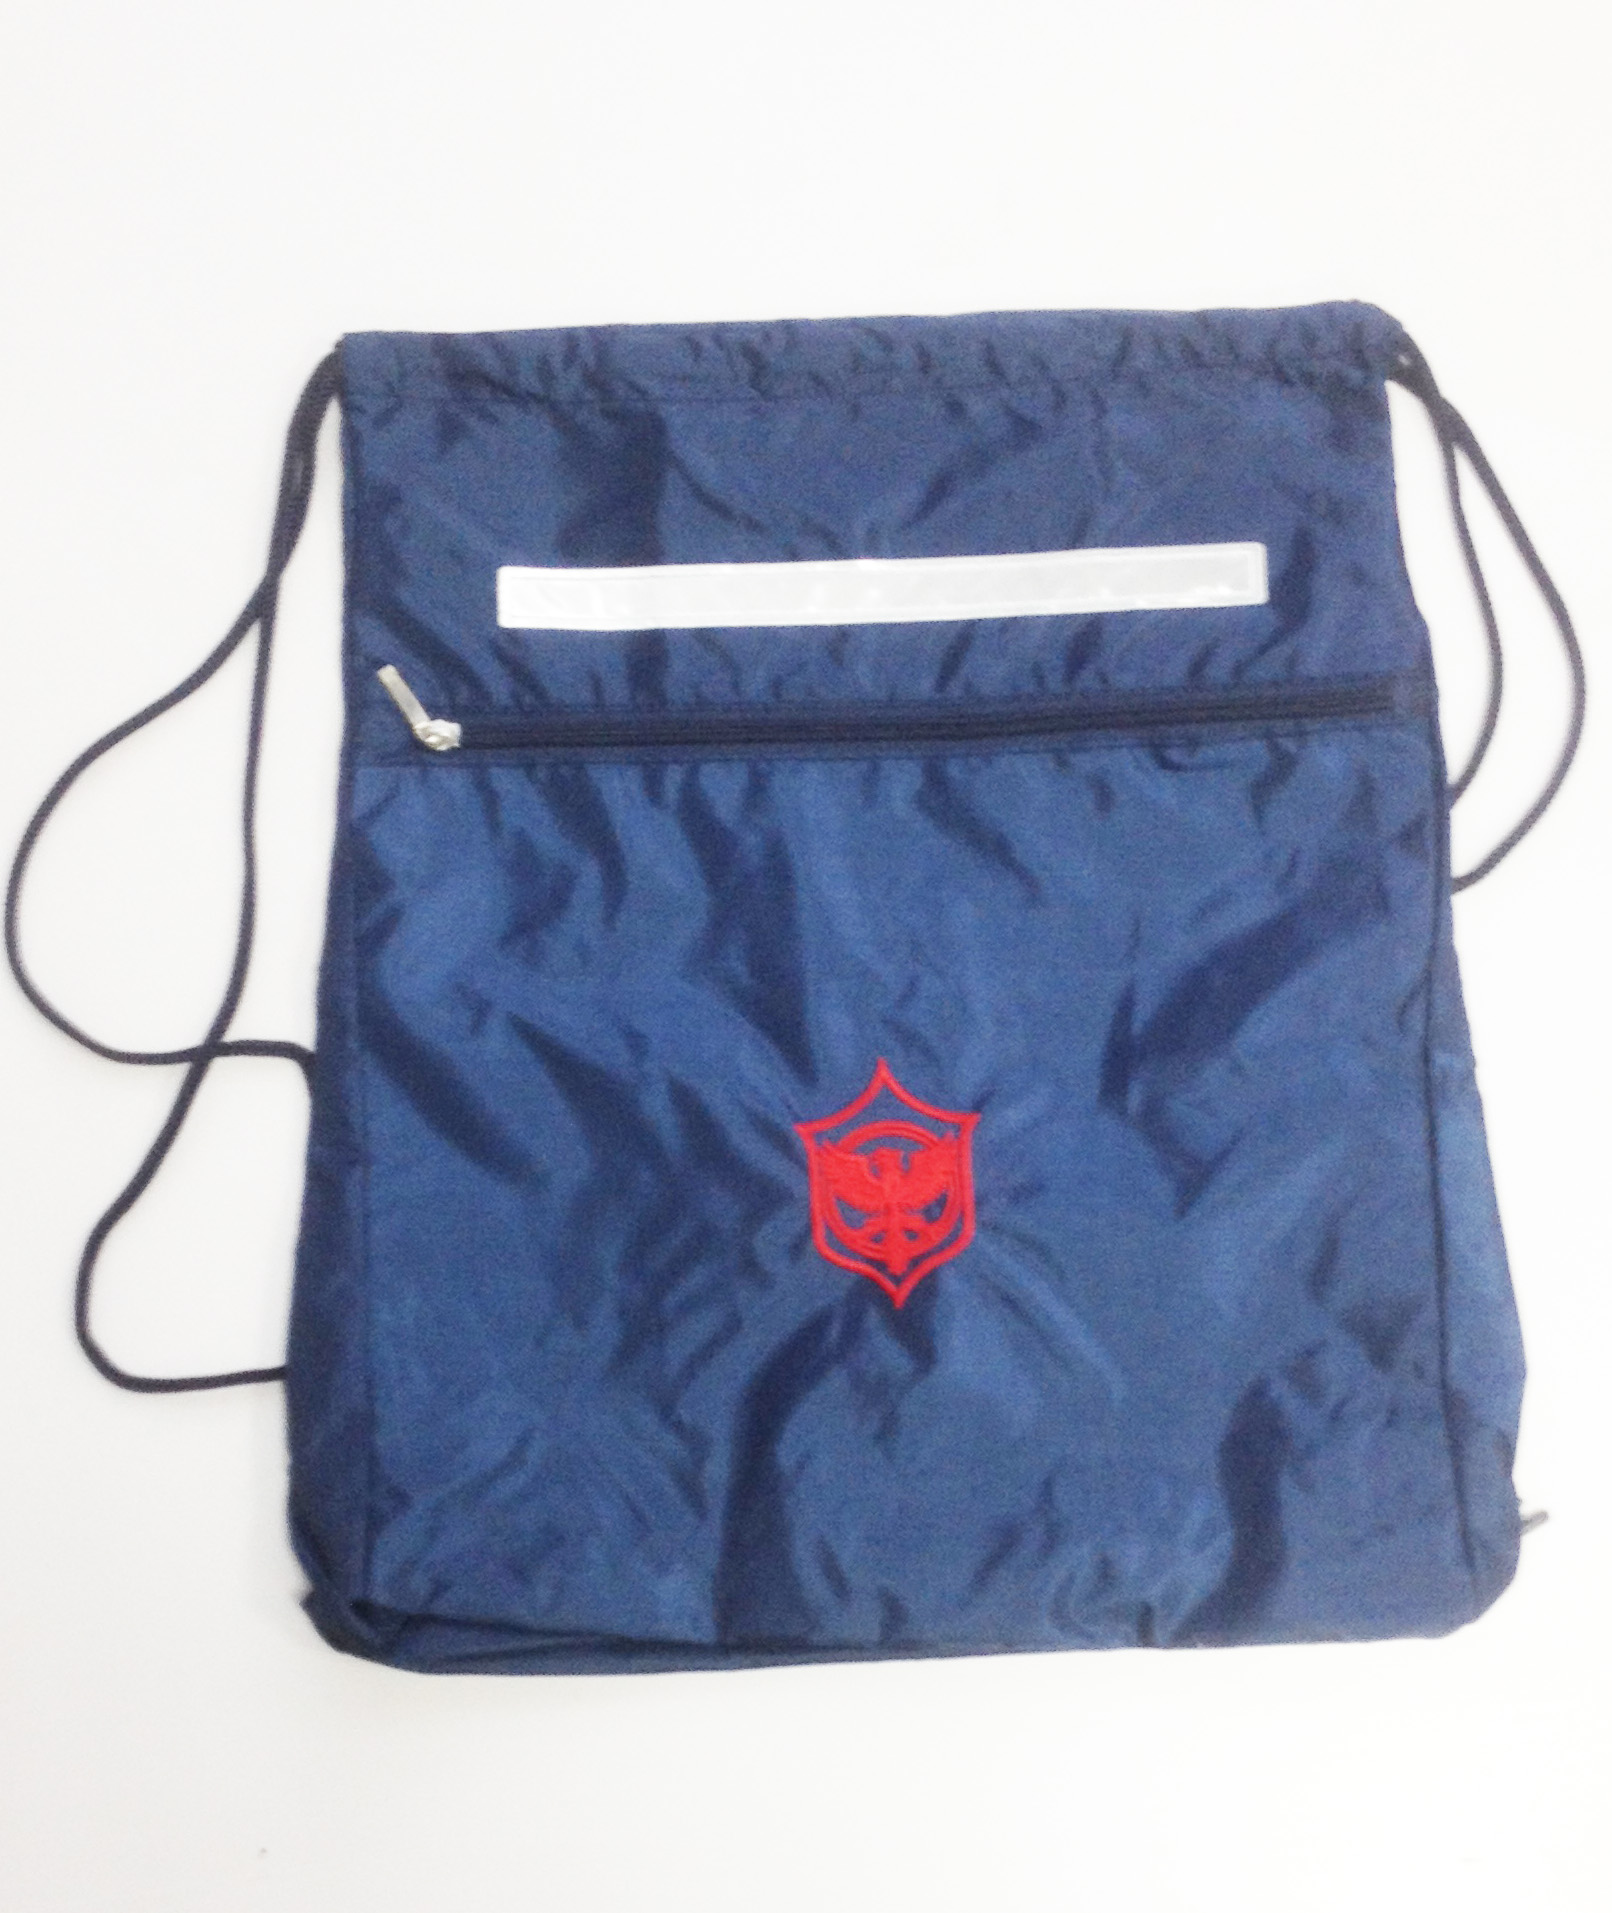 Westfield Premium Gym Bag (Navy)